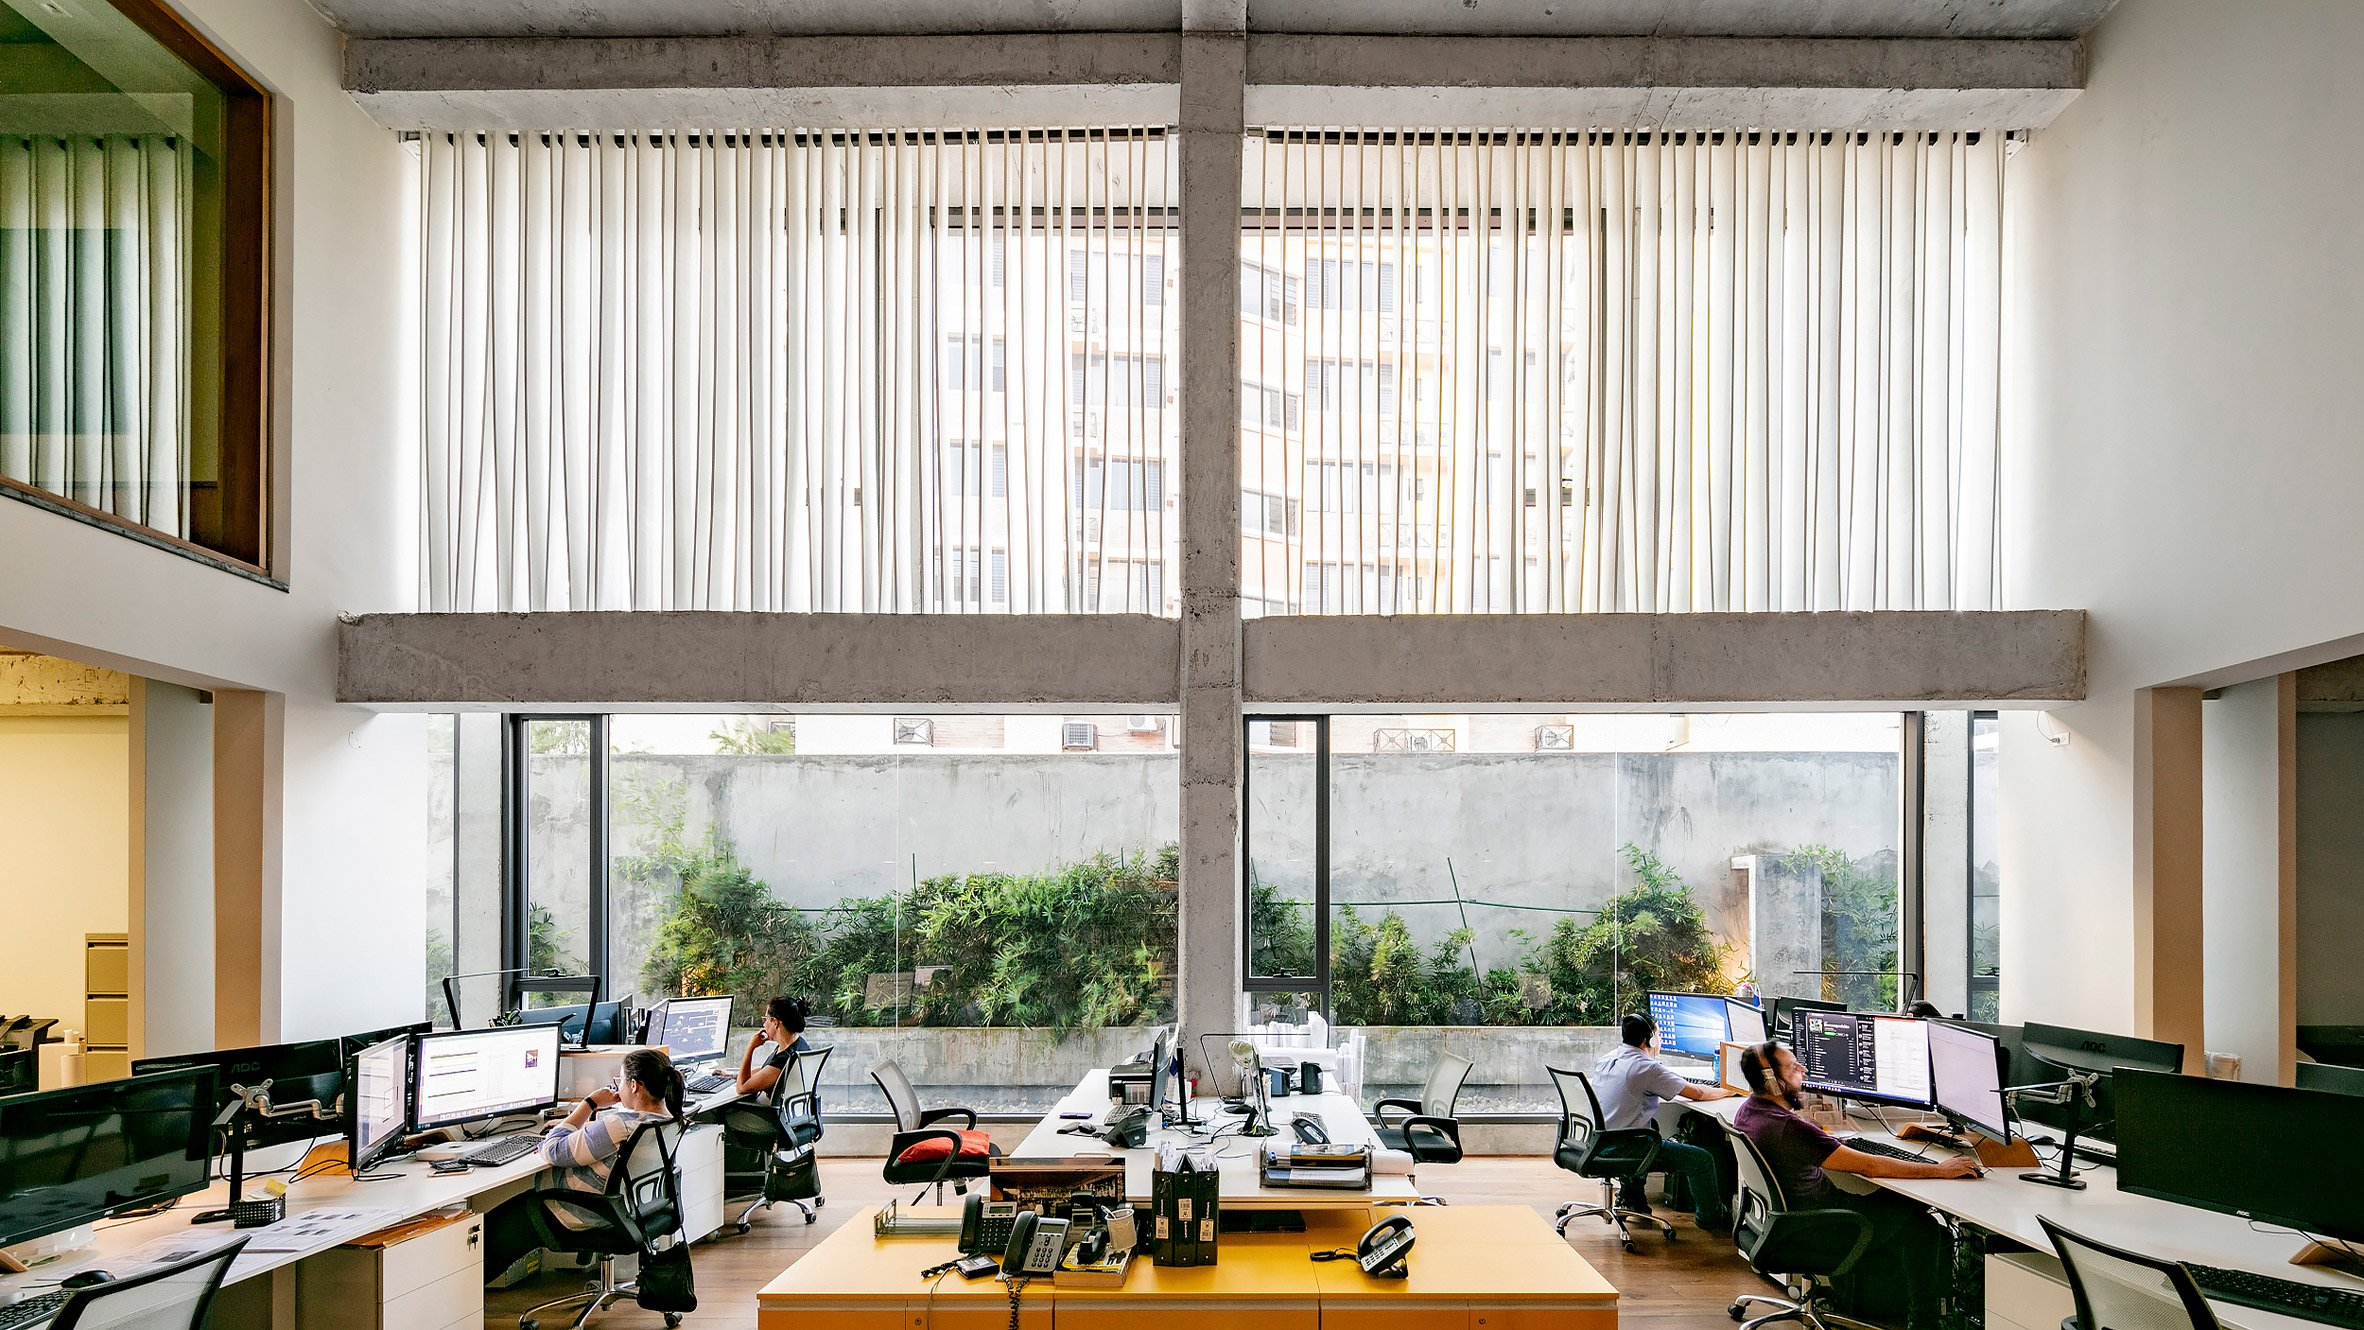 Ventura Office Panama City architecture studio photographed by Marc Goodwin